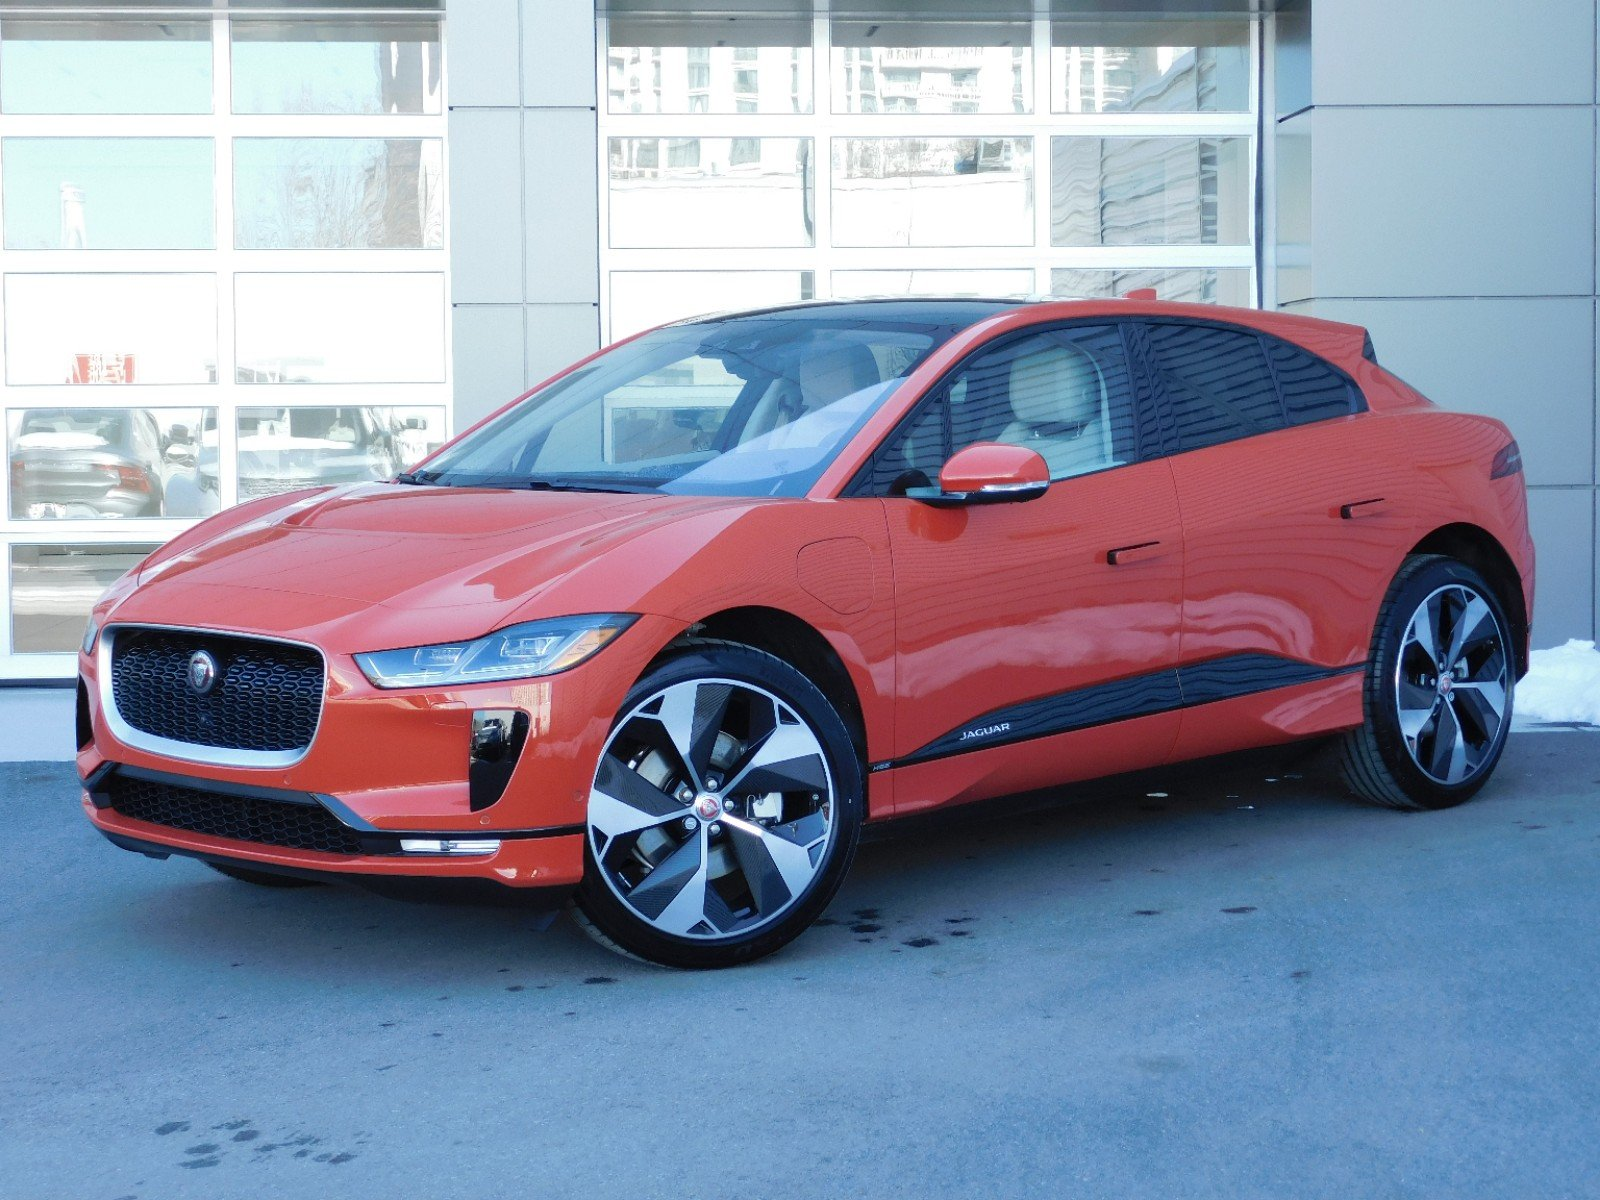 New 2019 Jaguar I-PACE WAGON 4 DOOR